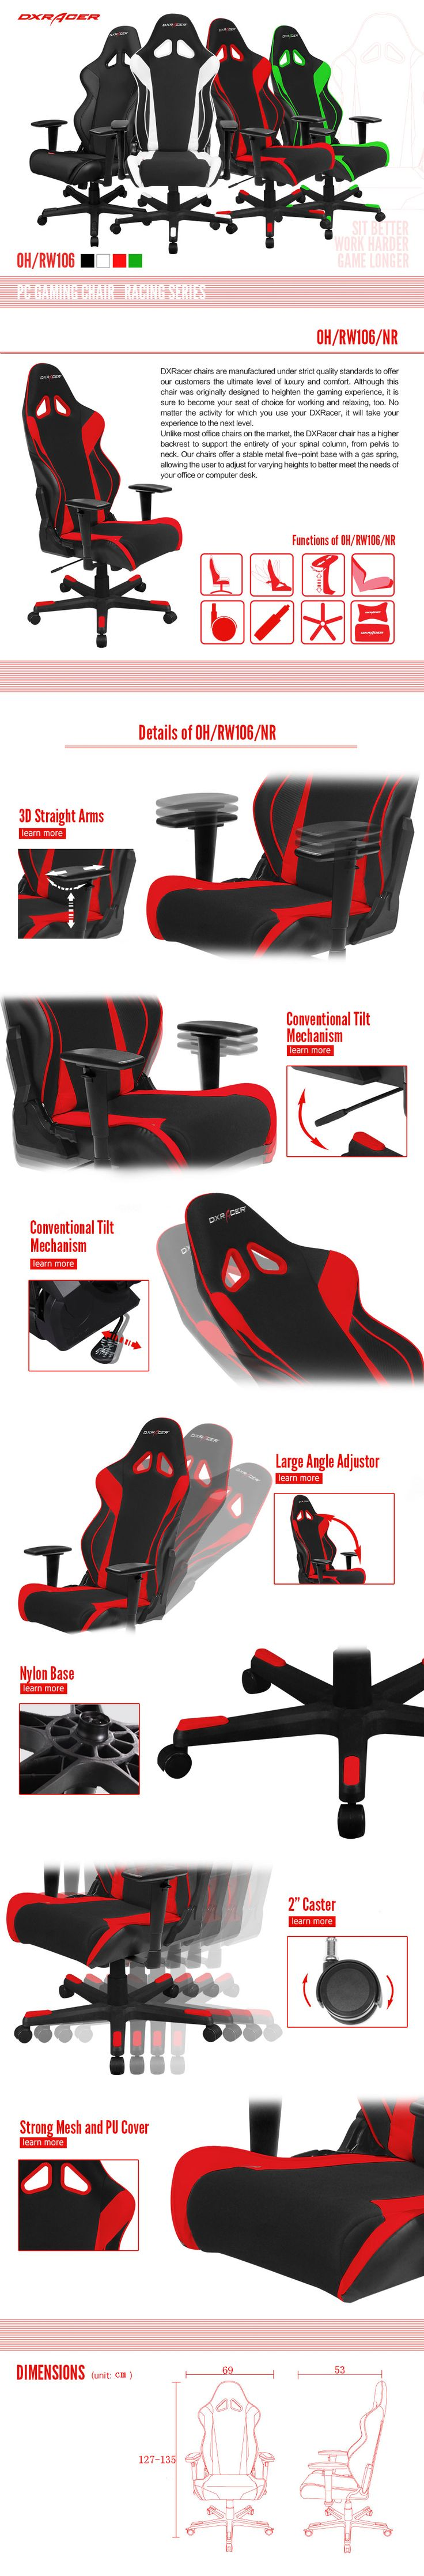 OH/RW106/NR - Racing Series - PC Gaming Chair   DXRacer Official Website